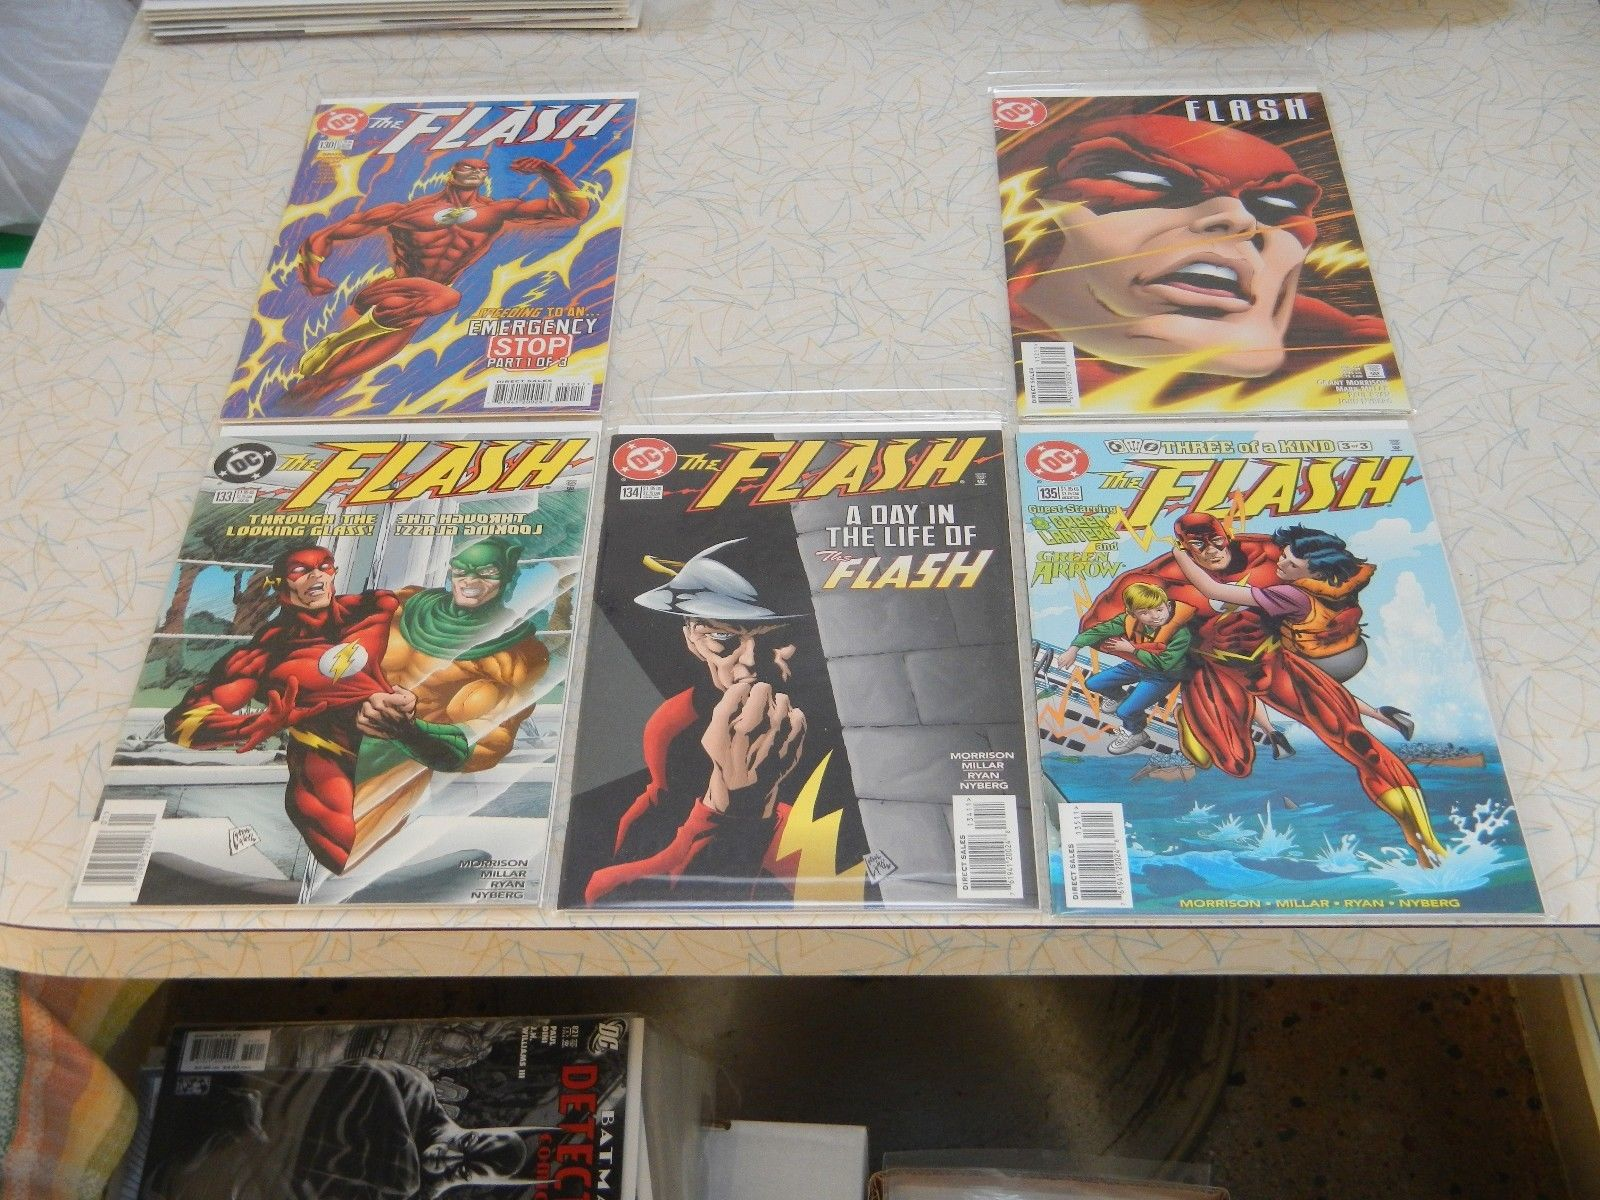 The Flash Vol. 2 #'s 130, 132-135, 137-141 (#138 included) by Morrison & Millar